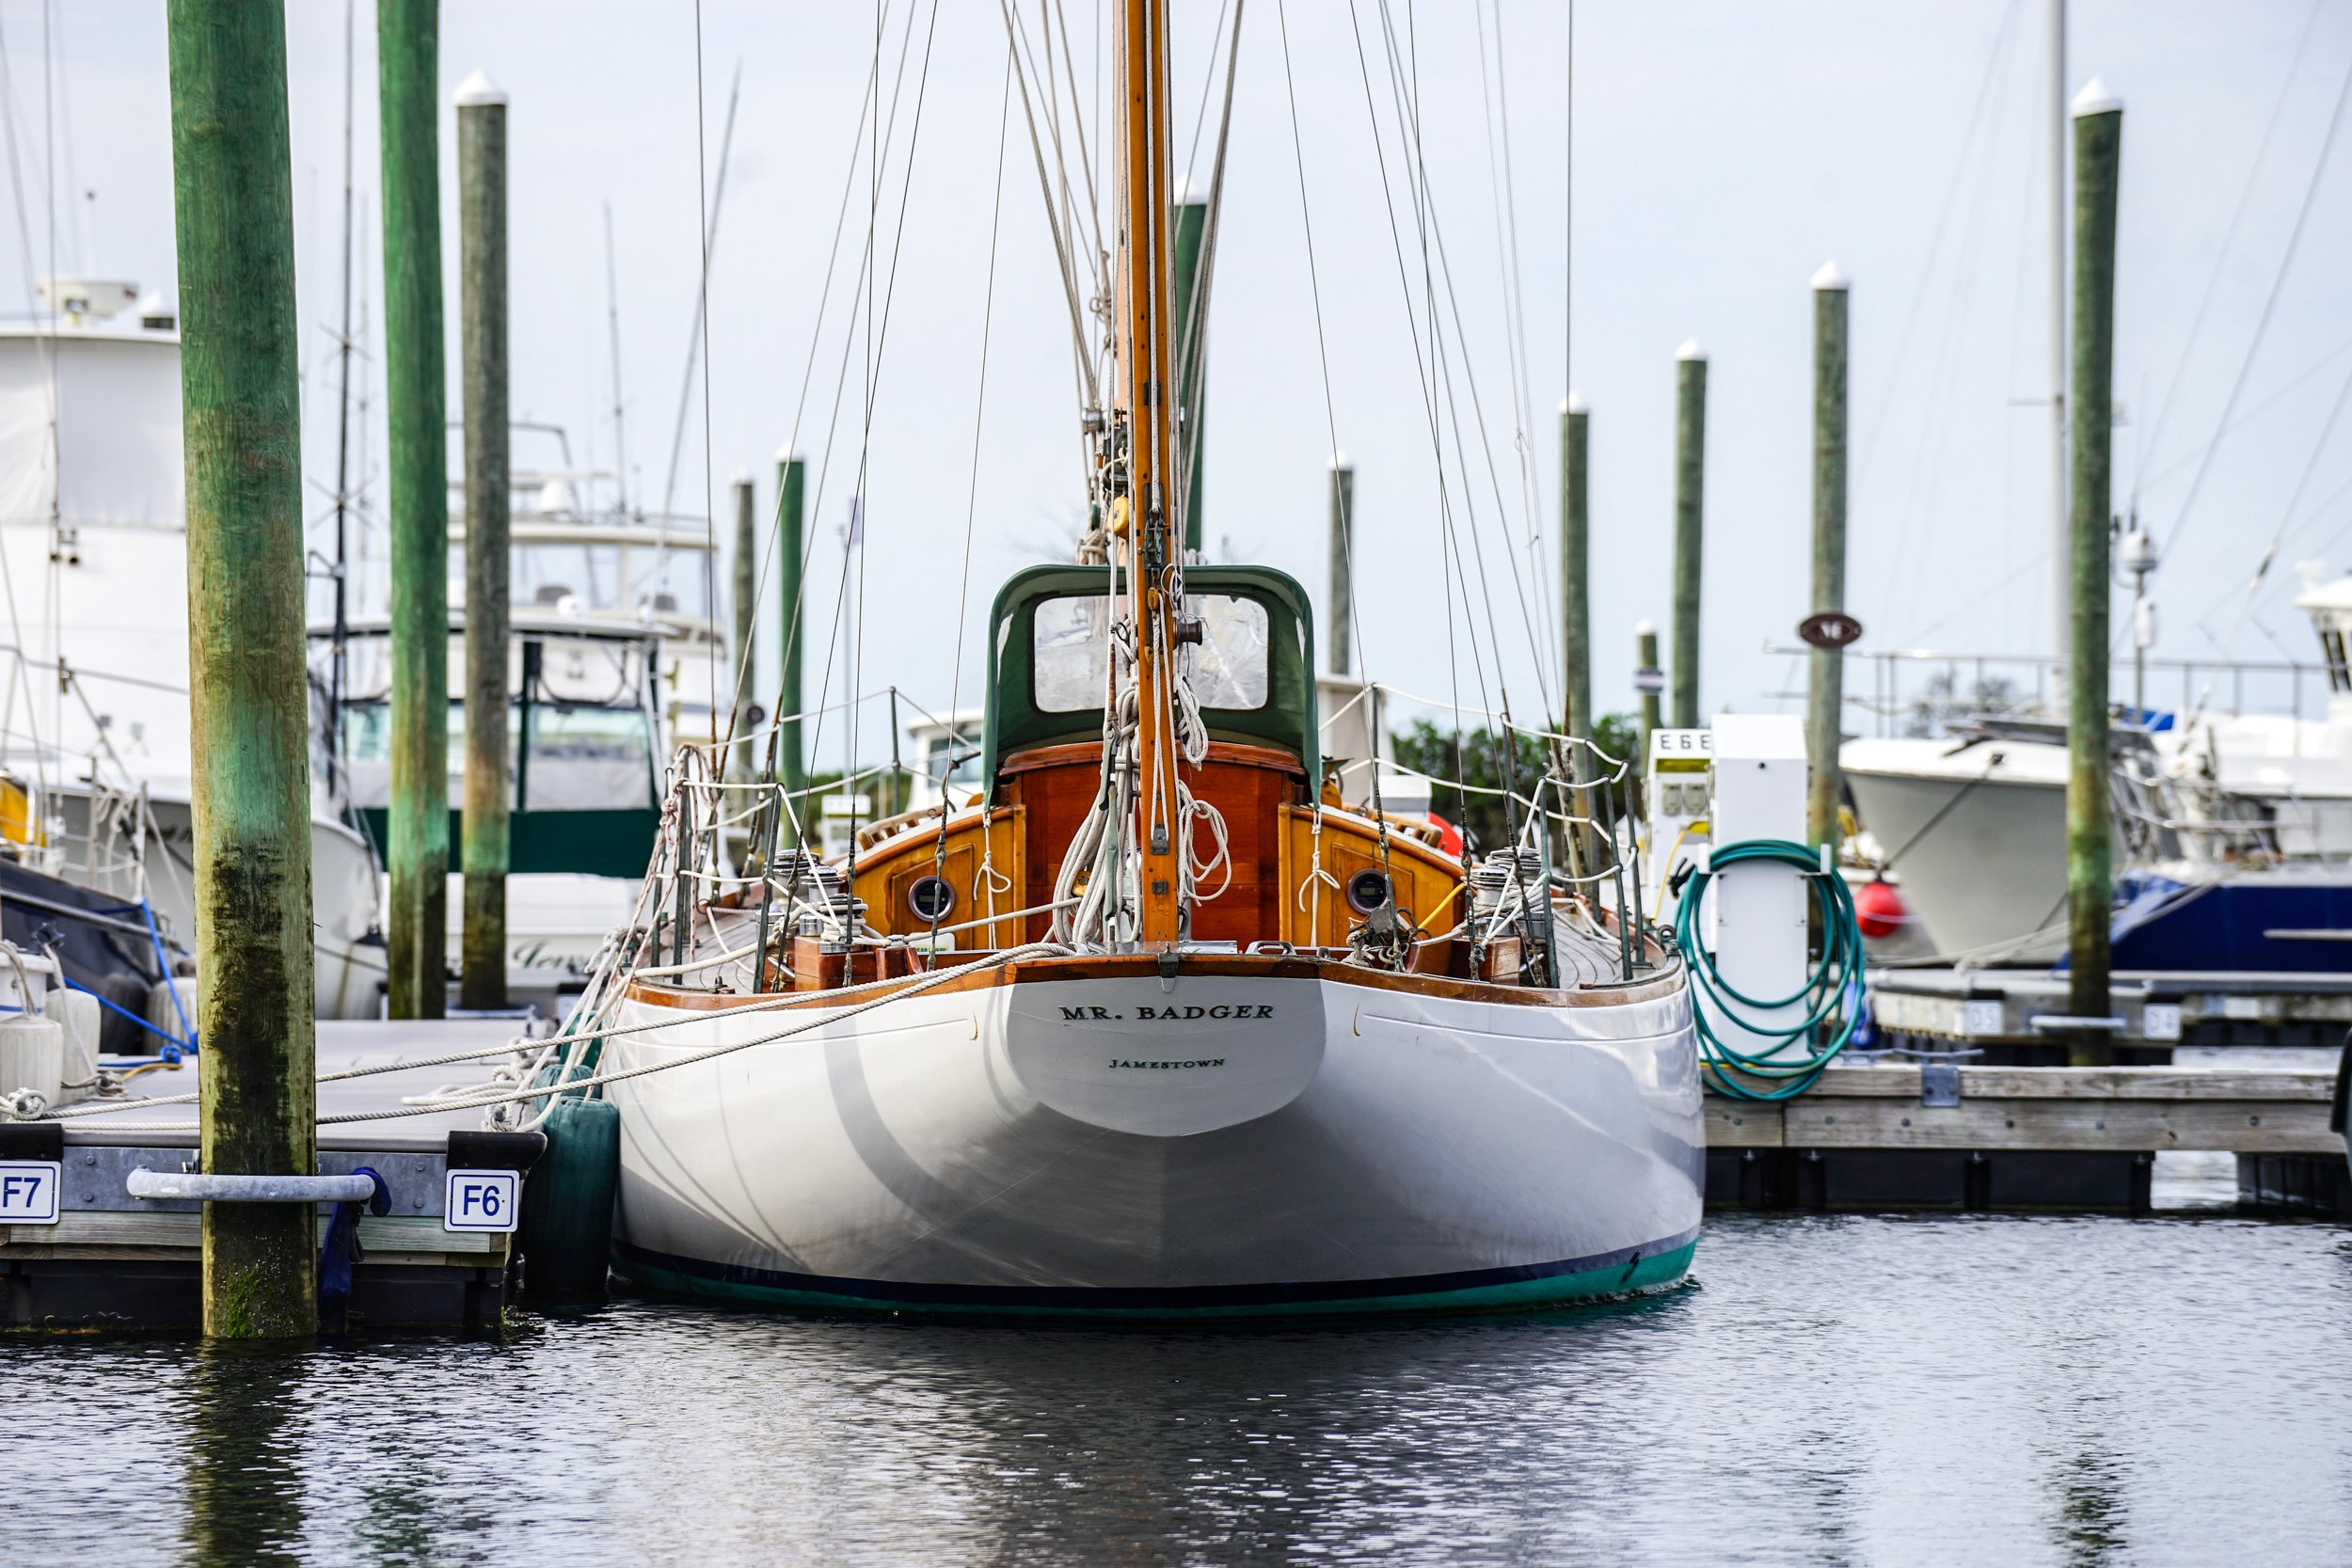 Mr. Badger & Co. - Private Sailing Charters Newport and Jamestown